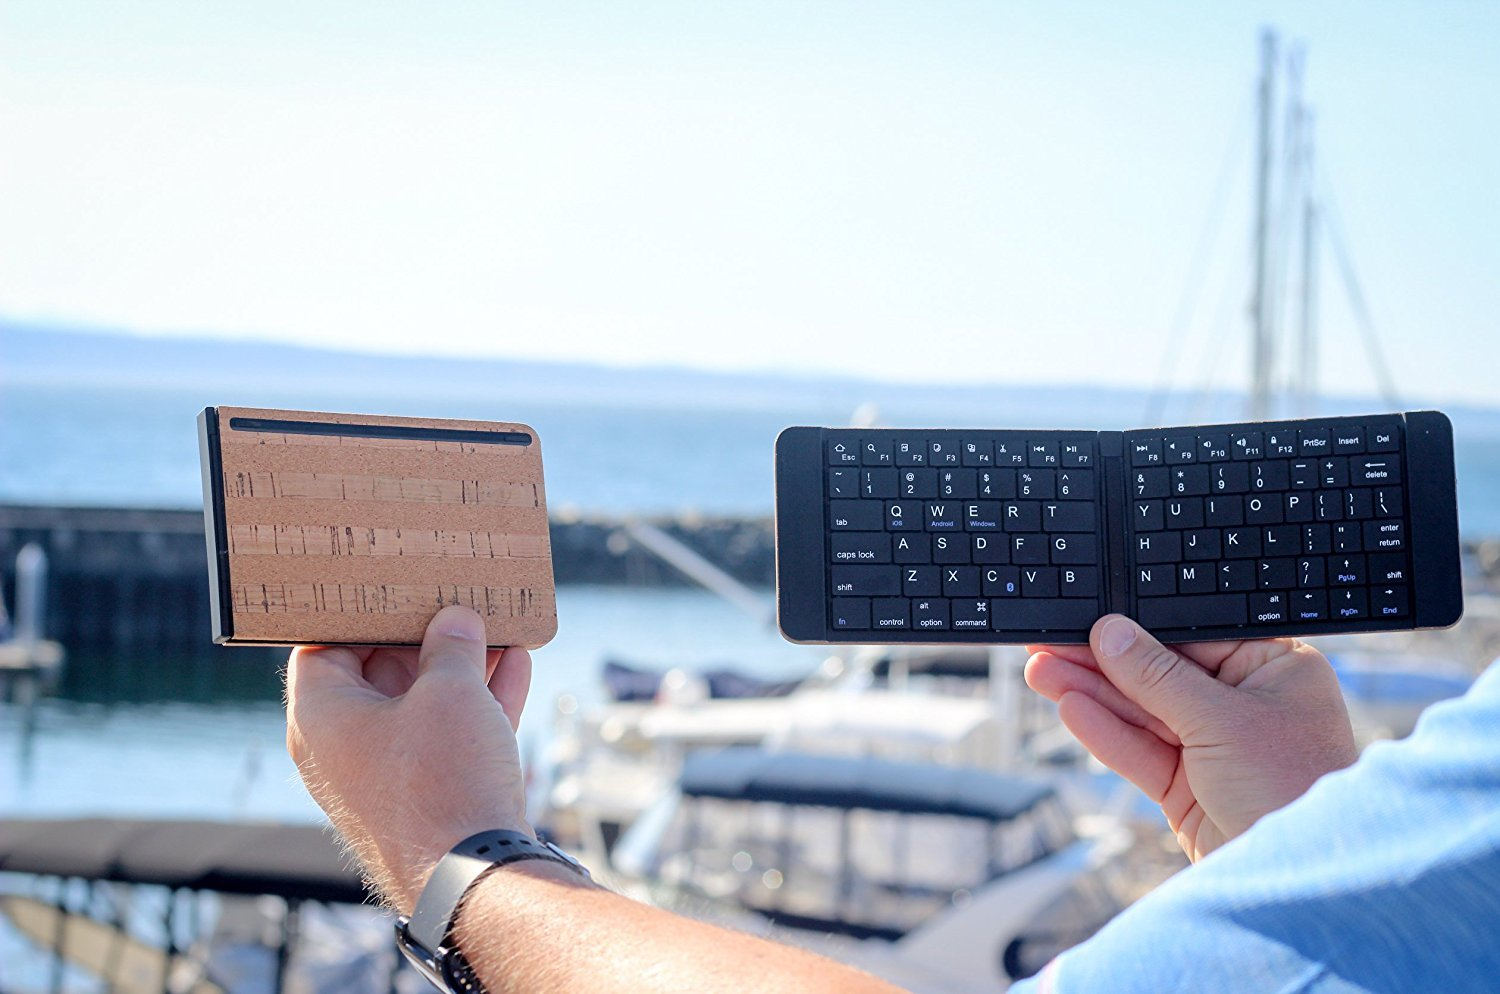 Foldable Bluetooth Keyboard by Reveal Shop - Natural Cork Leather Exterior - for iPhone, iPad, Android devices, Windows tablet, PC & MAC Computers - 30 hour battery life (Cork) by Reveal (Image #5)